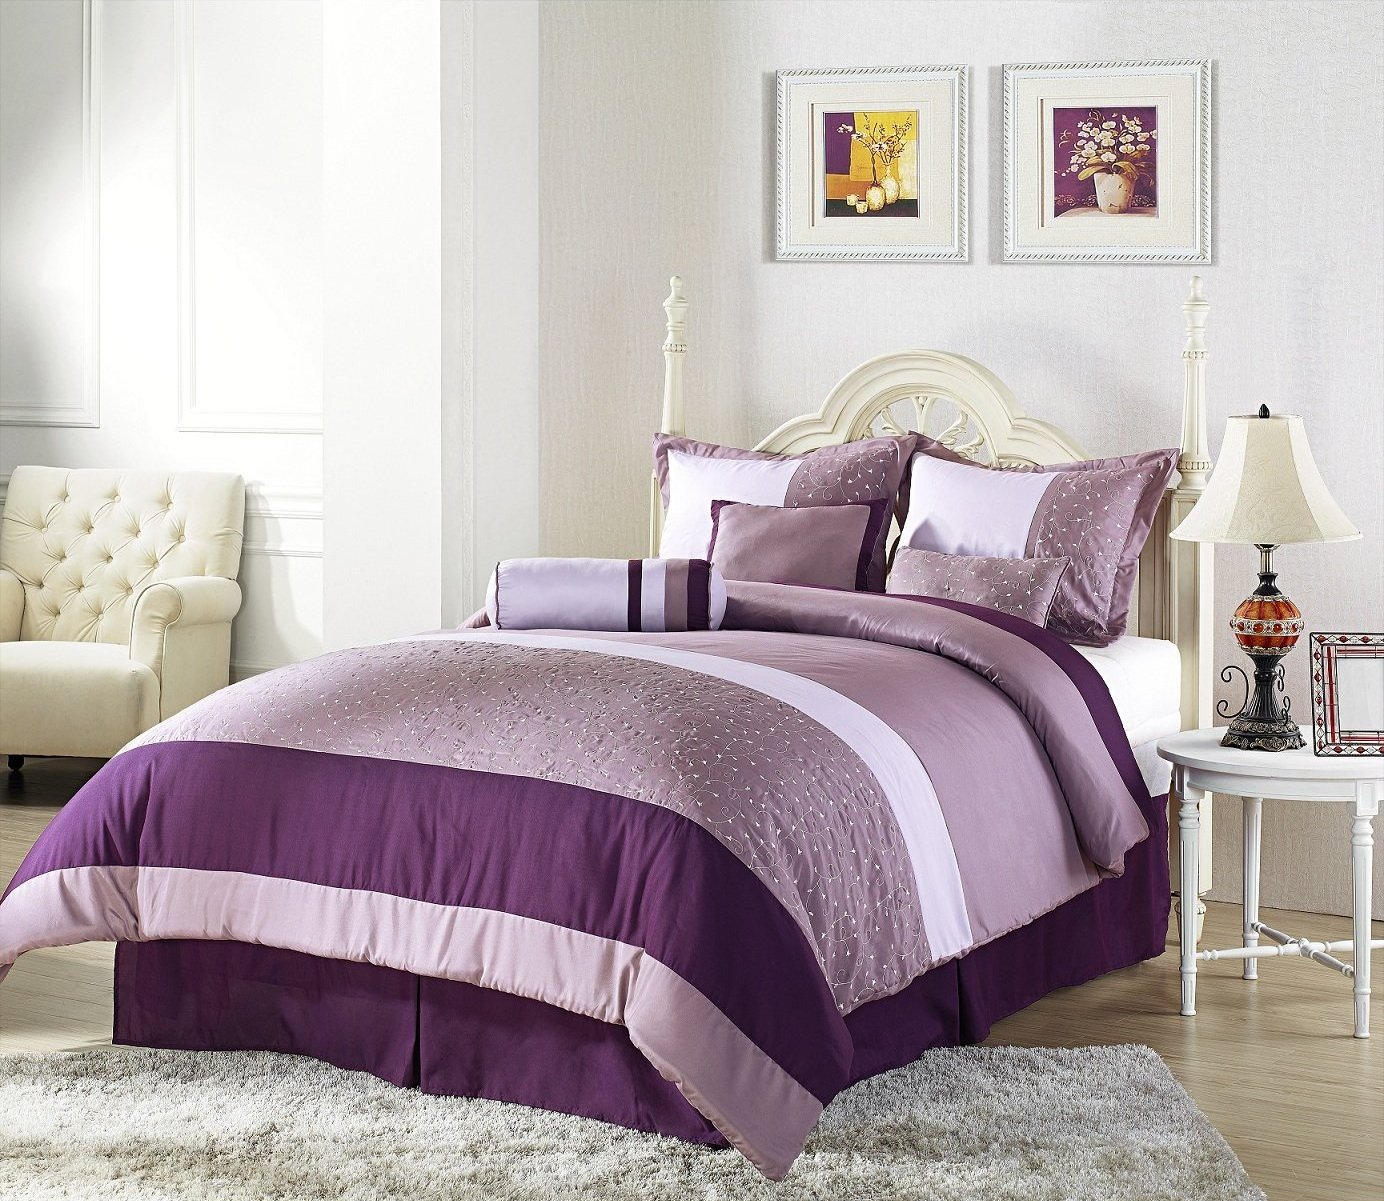 Simple purple bedroom interior - Email Thisblogthis